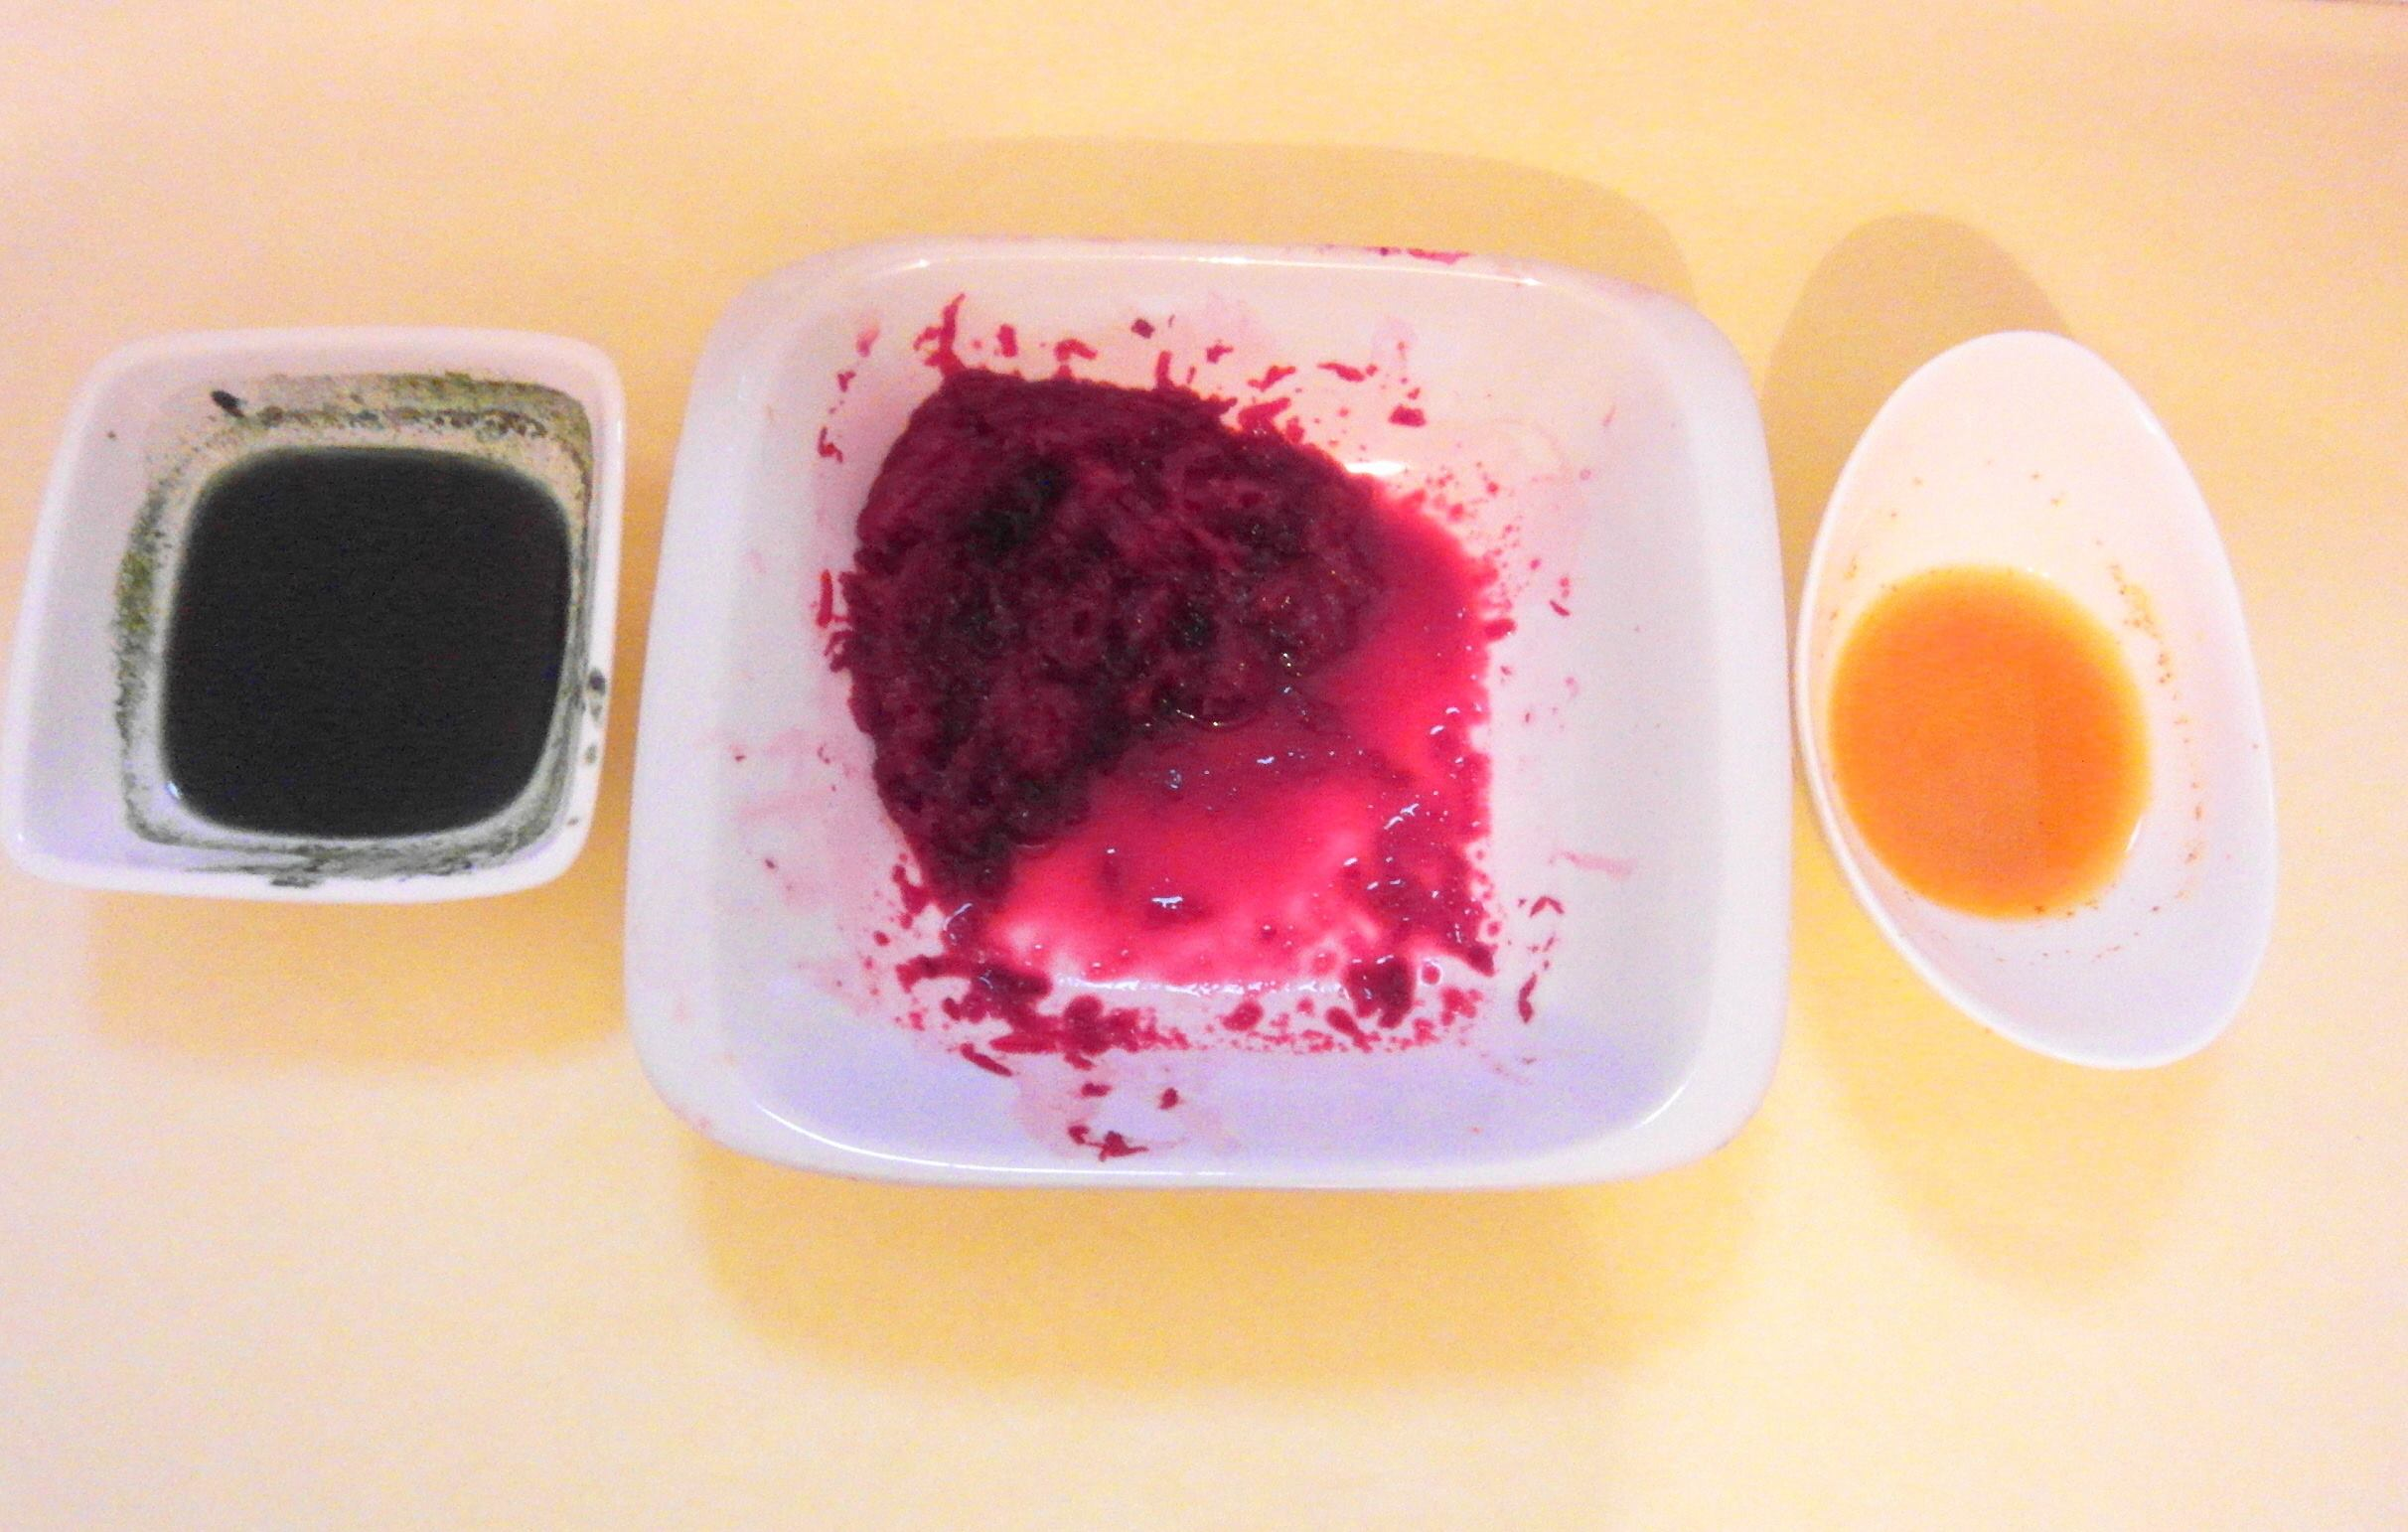 DIY Vegan Food Coloring vegan recipes by Vegan Slaughterer Yaeli Shochat